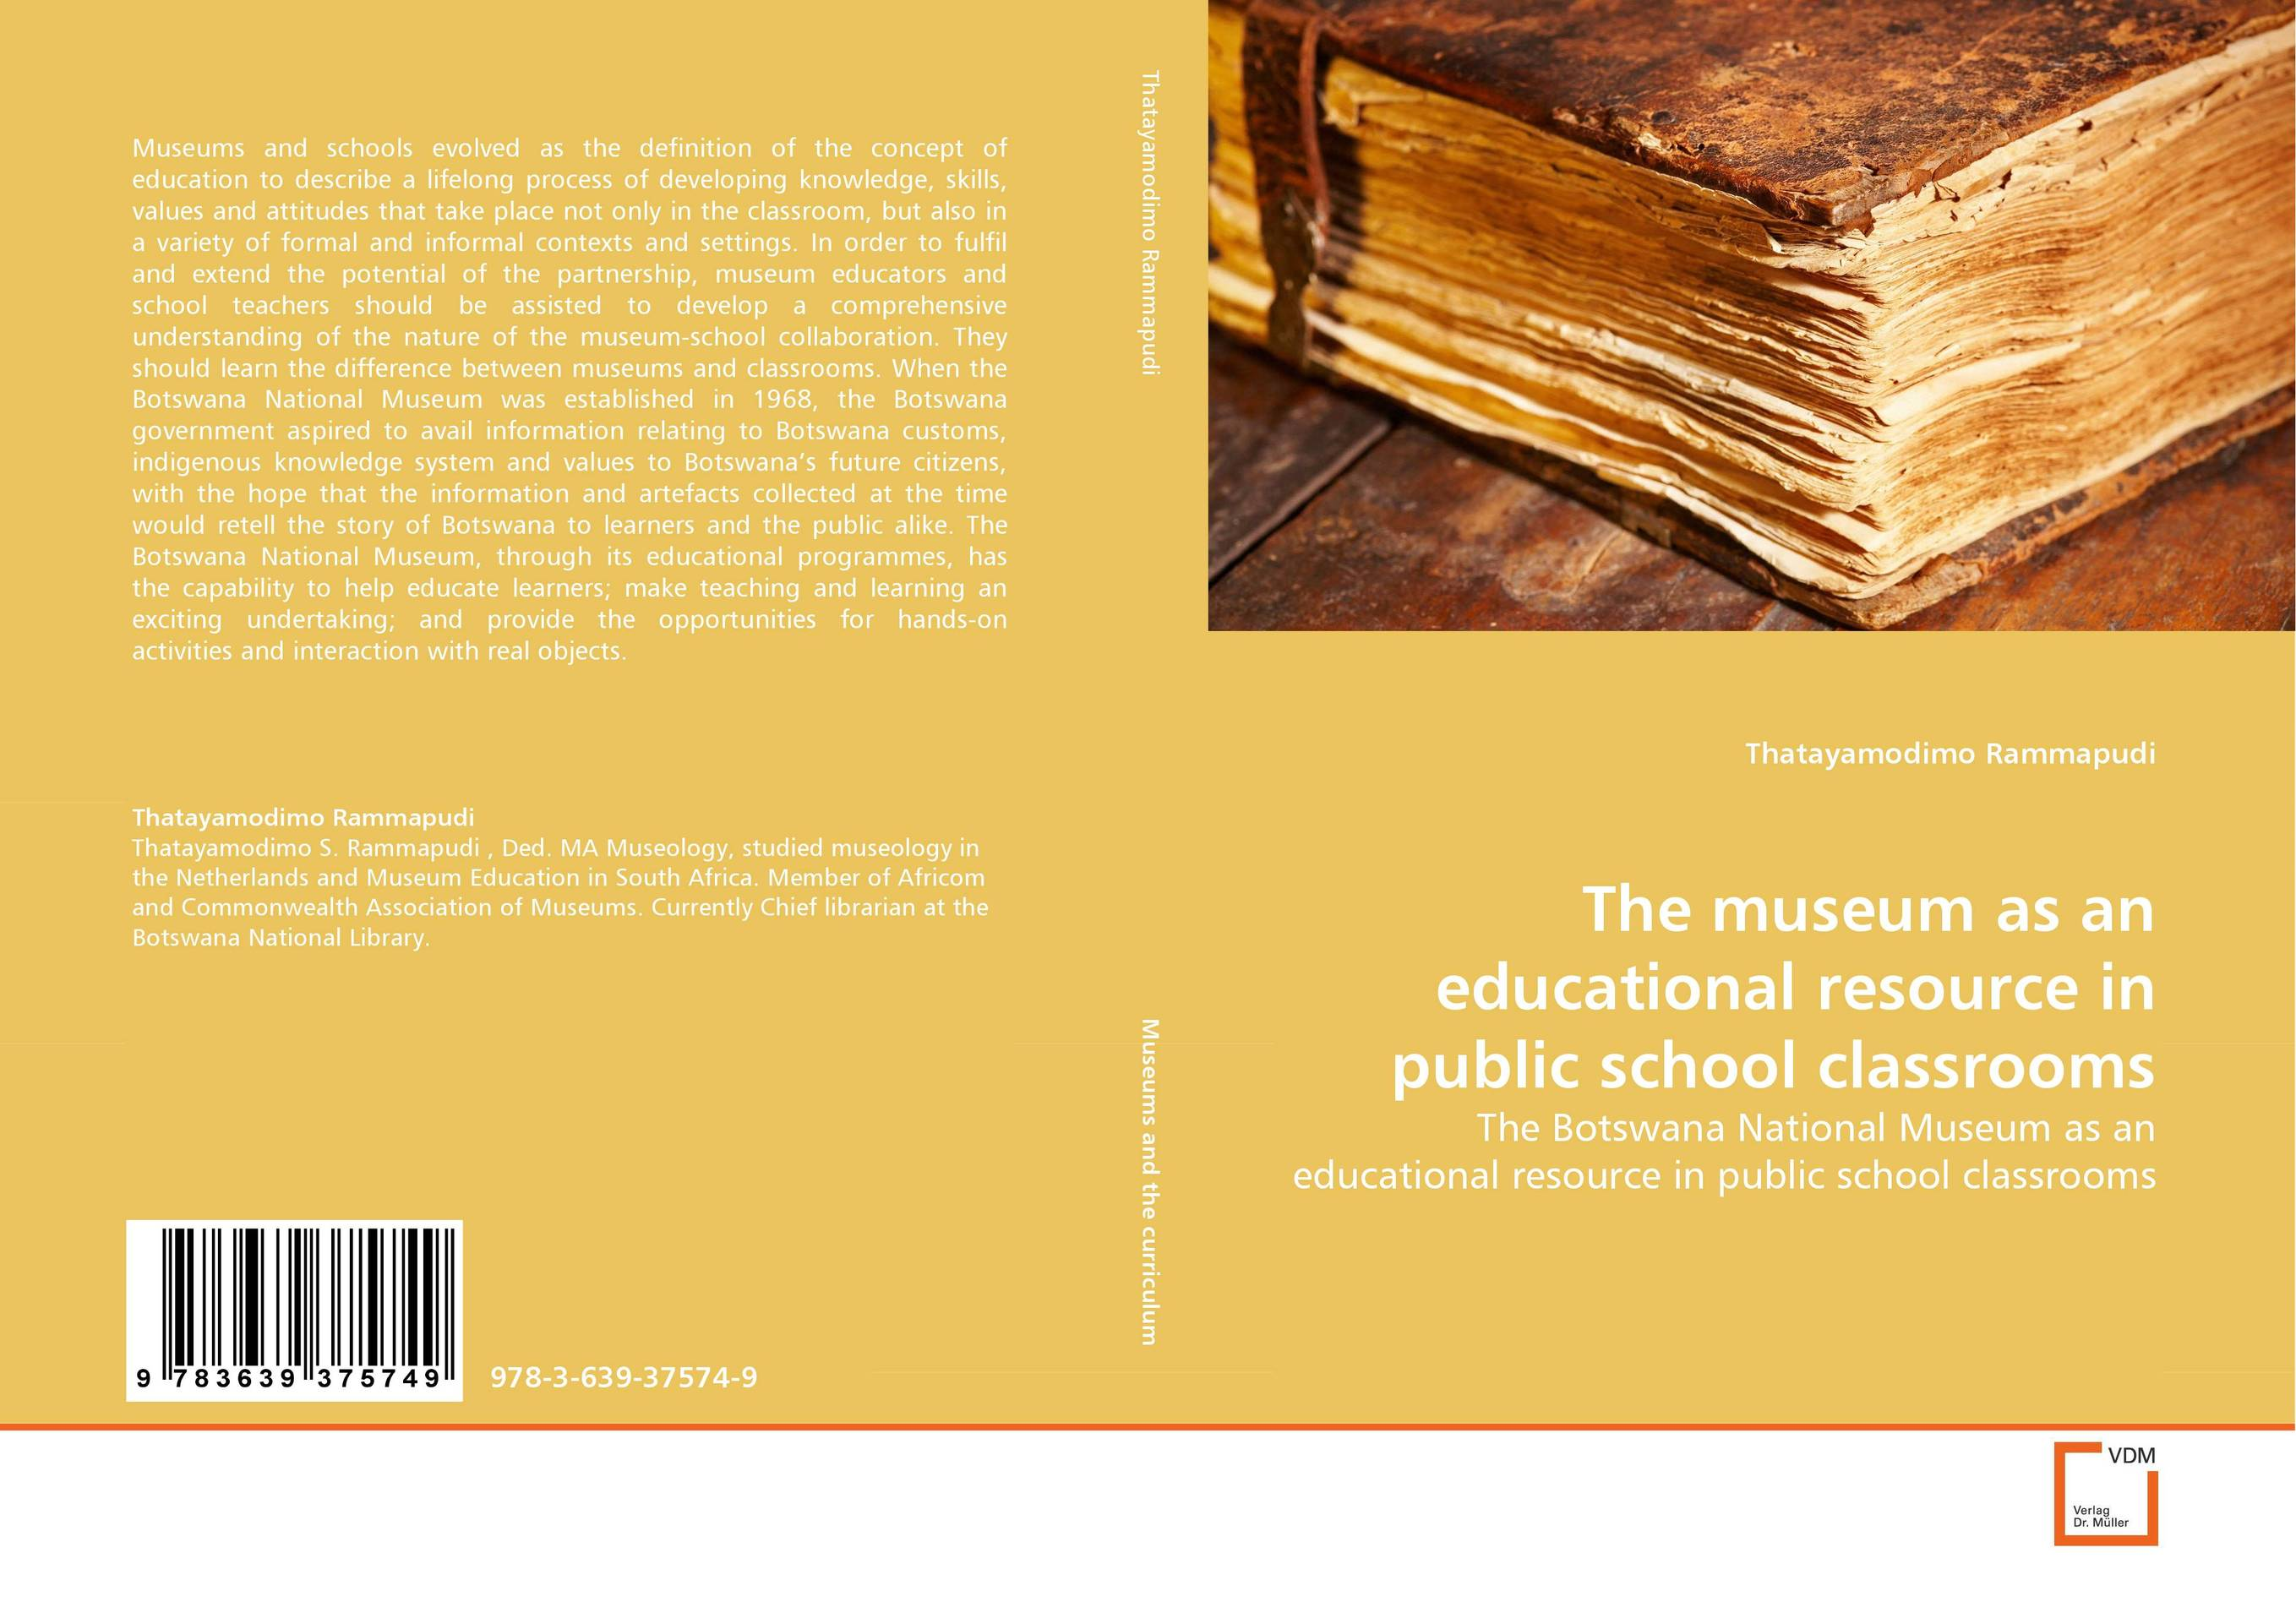 The museum as an educational resource in public school classrooms educational resource allocation